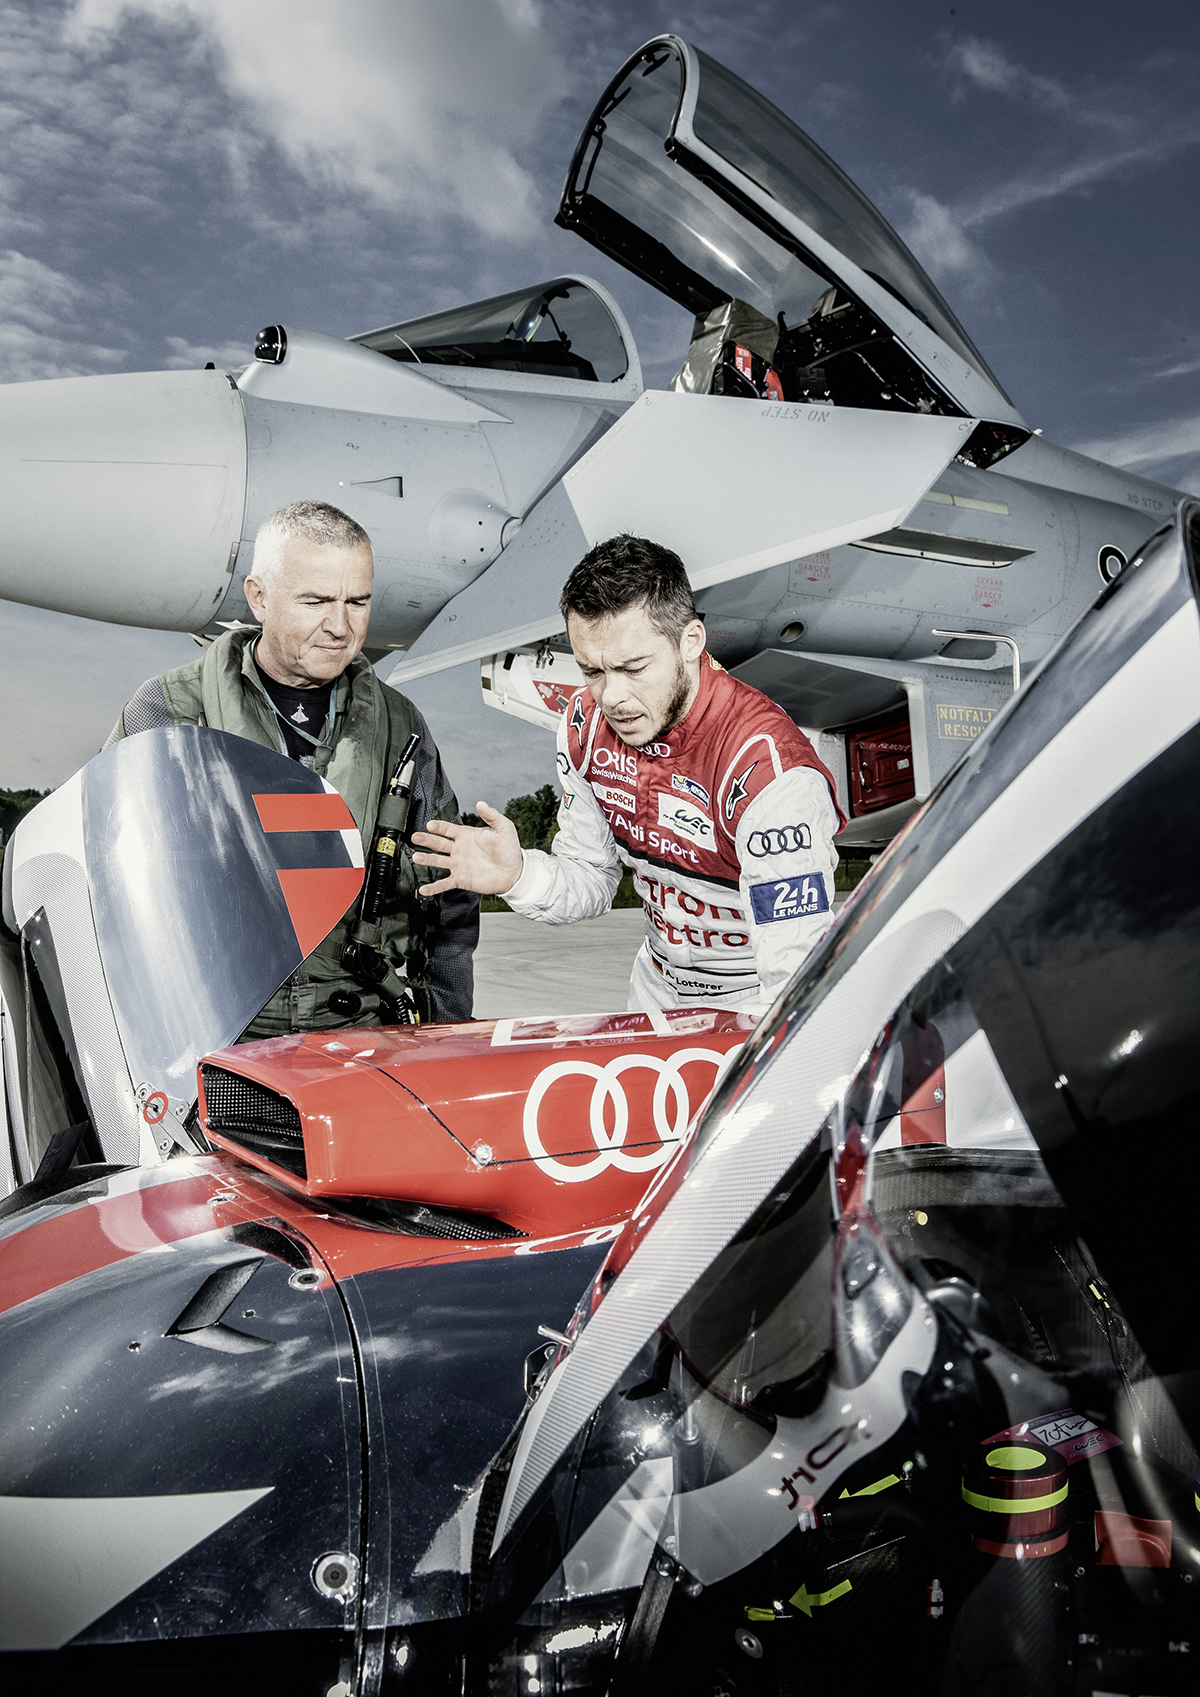 PASSION - FLIGHT CLUB Helping hand – André Lotterer explains to Krähenbühl how to climb into the race car's tight cockpit.